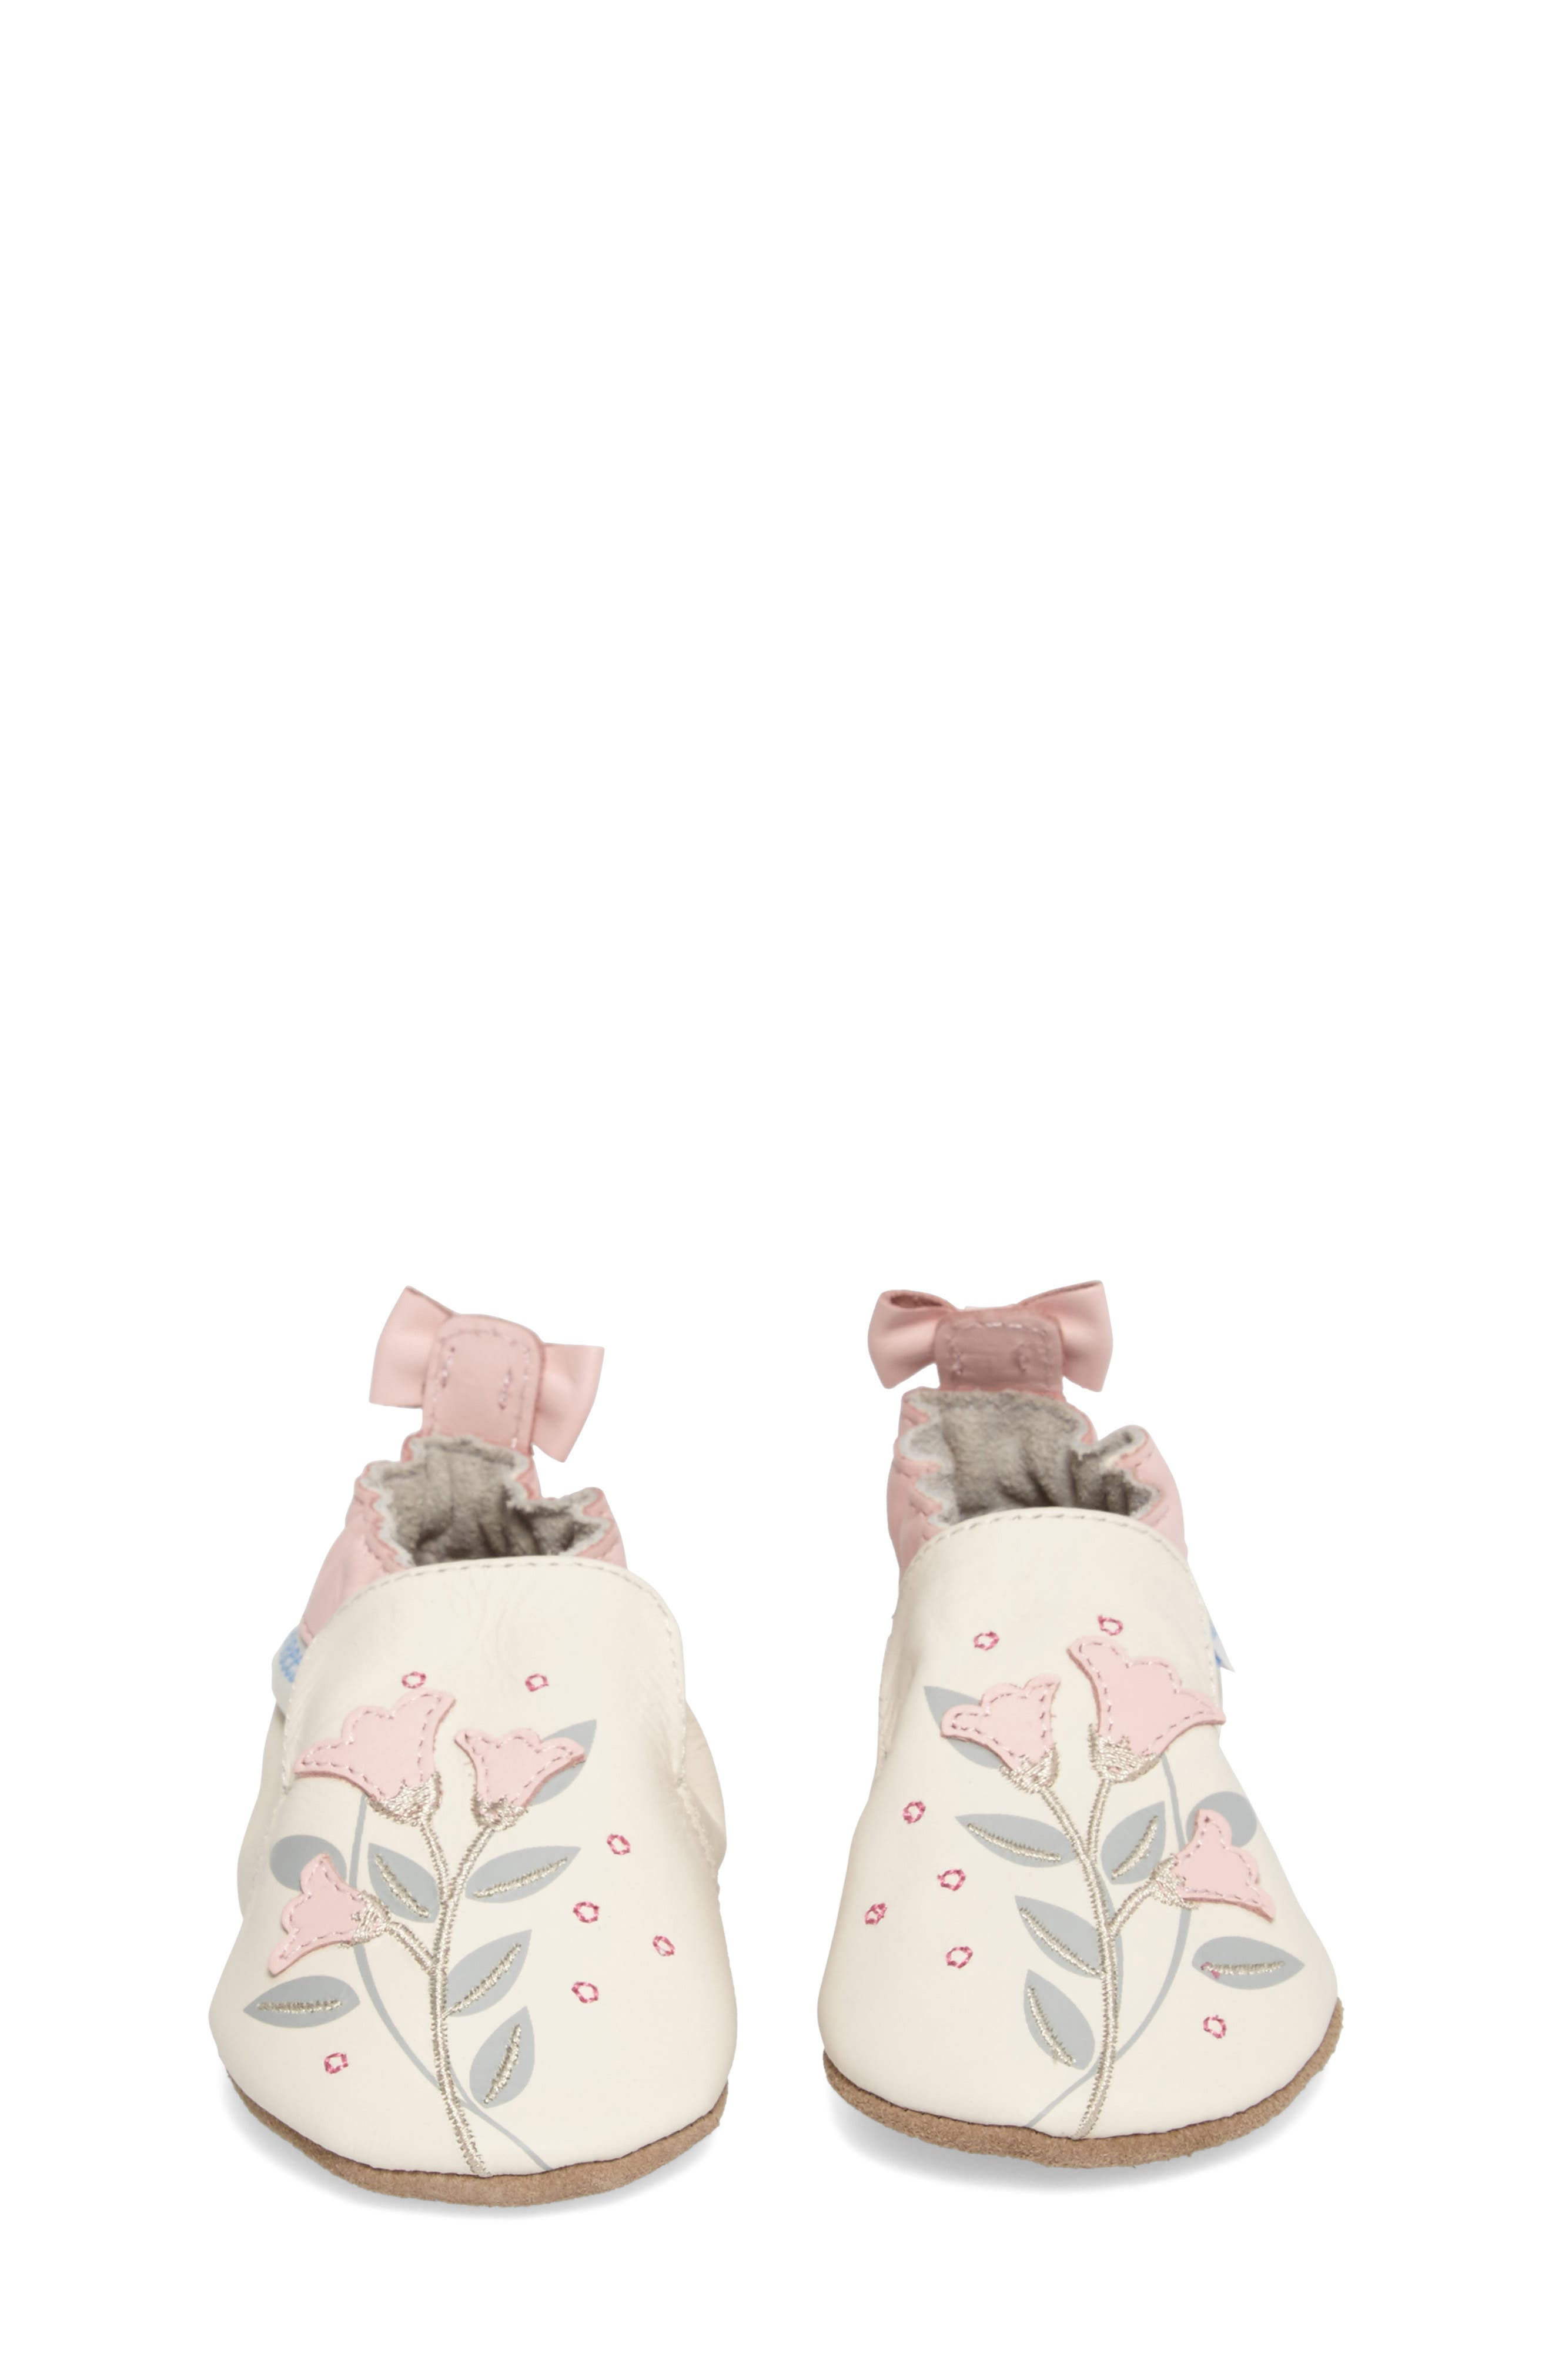 Rosealean Crib Shoe,                             Alternate thumbnail 4, color,                             Cream/ Pink Leather